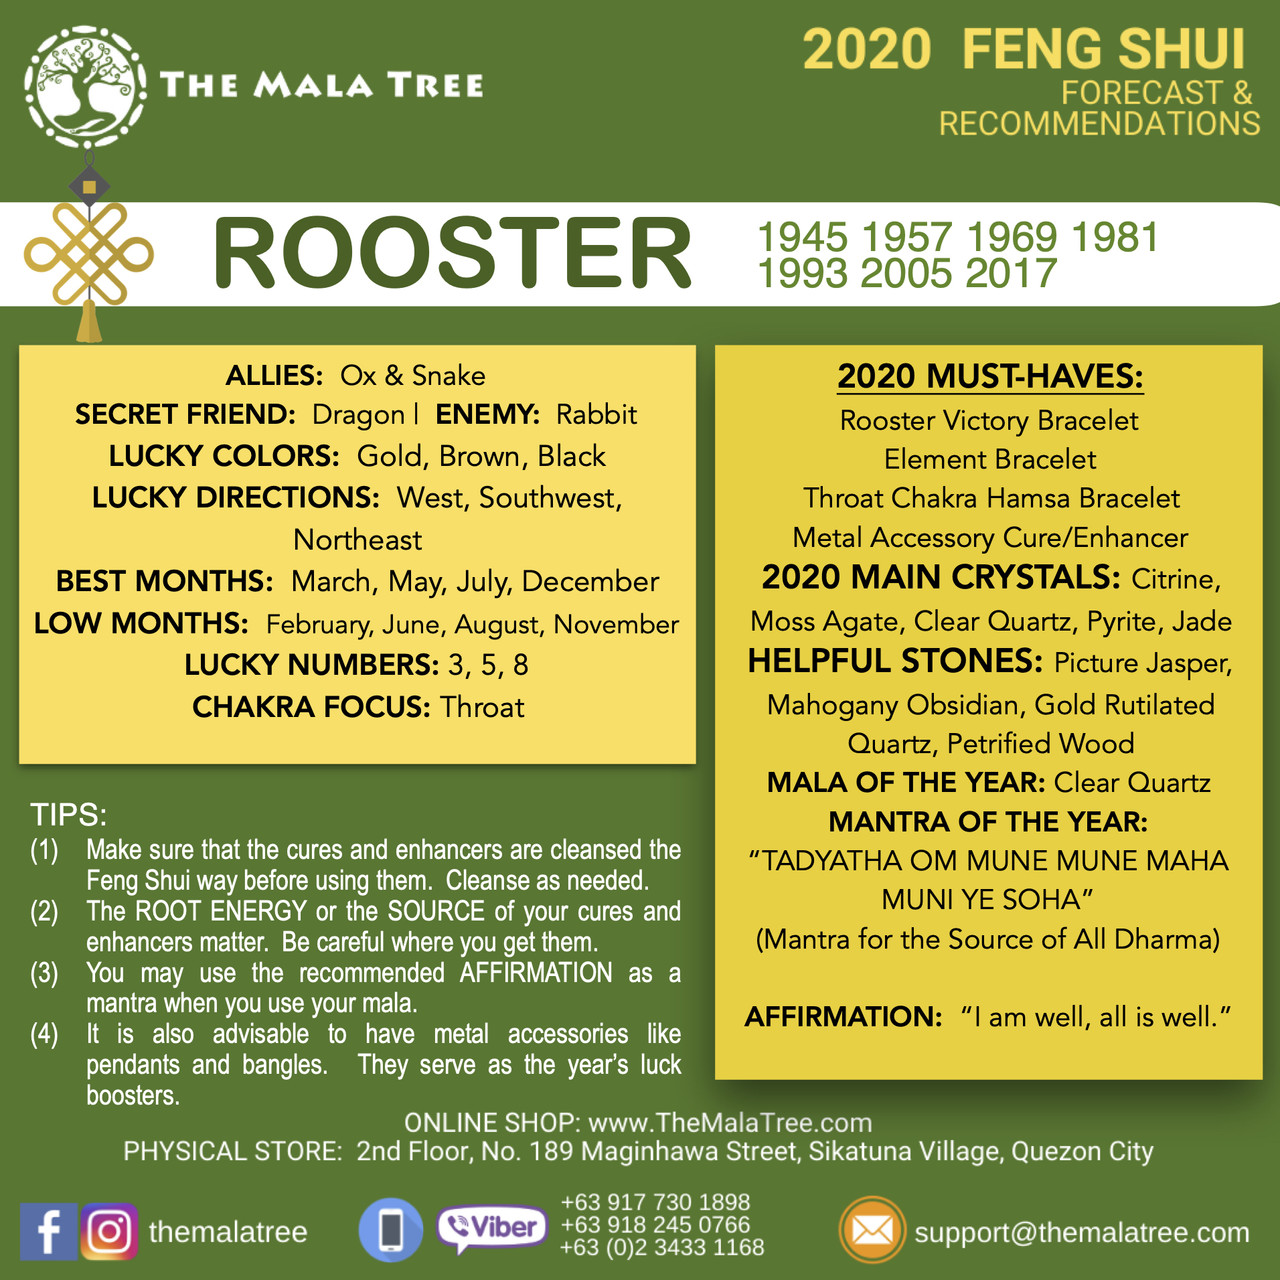 ROOSTER in 2020